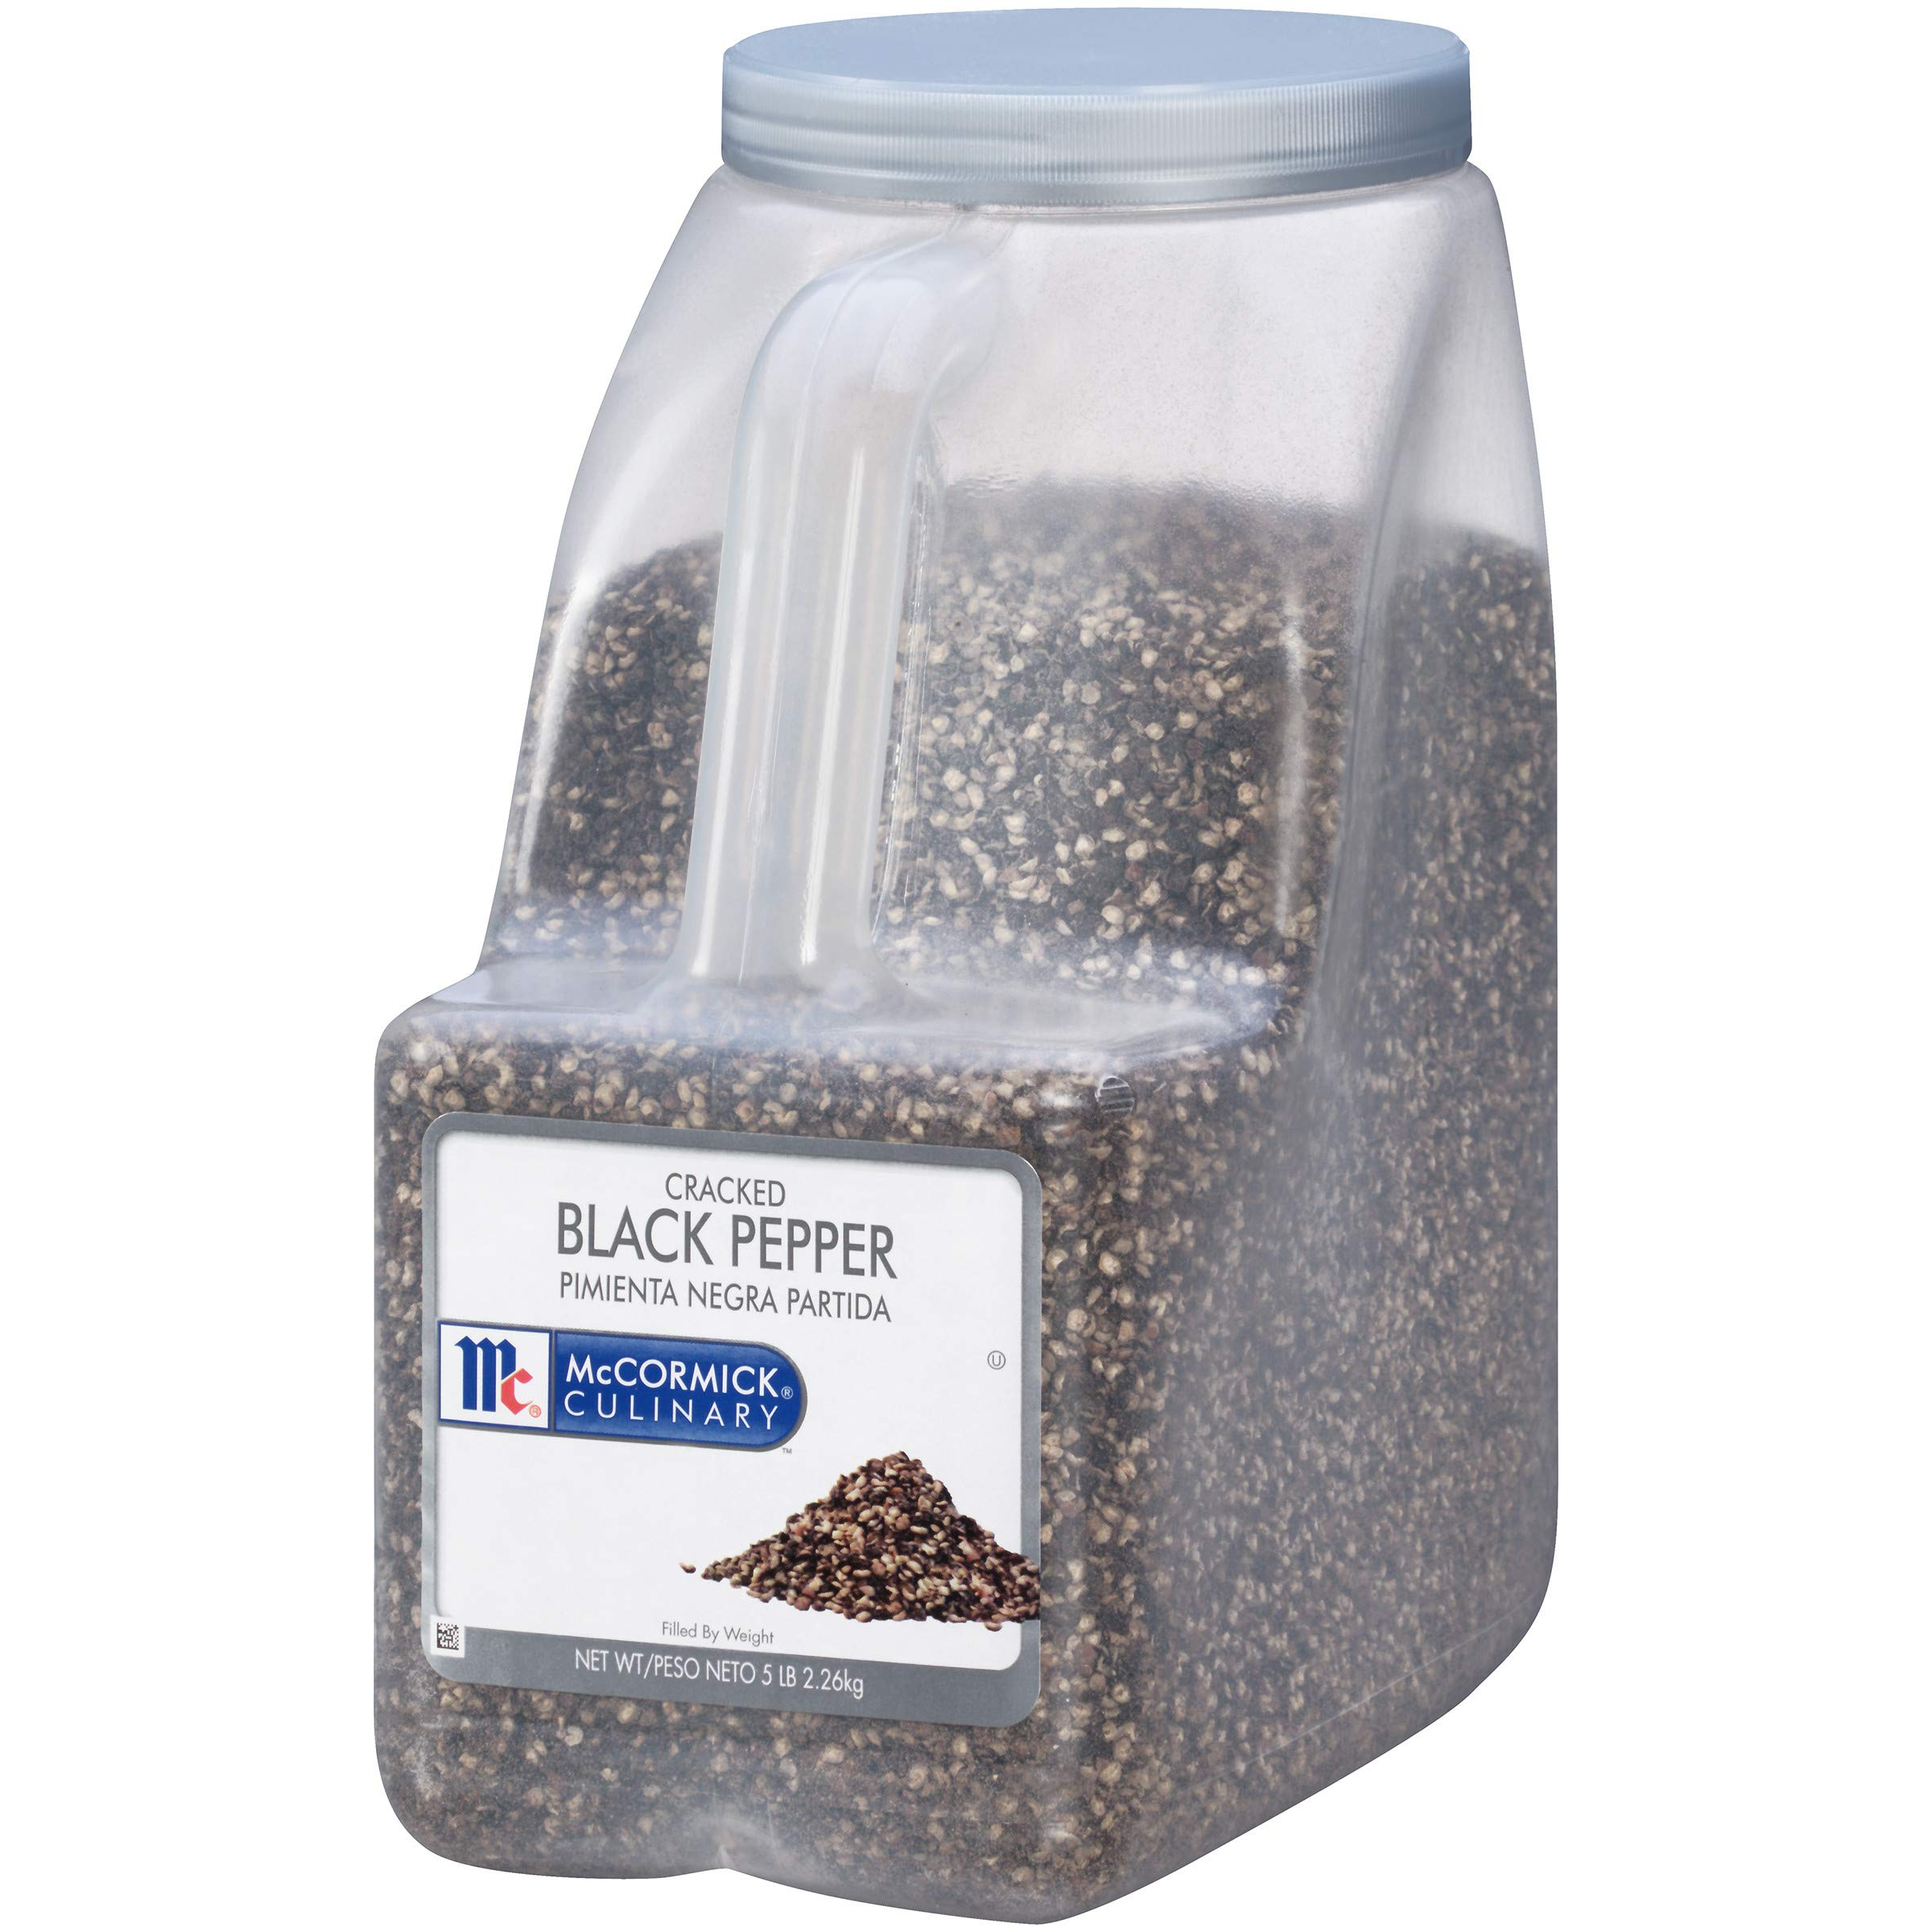 McCormick Culinary Cracked Black Pepper, 5 lbs by Cattlemen's